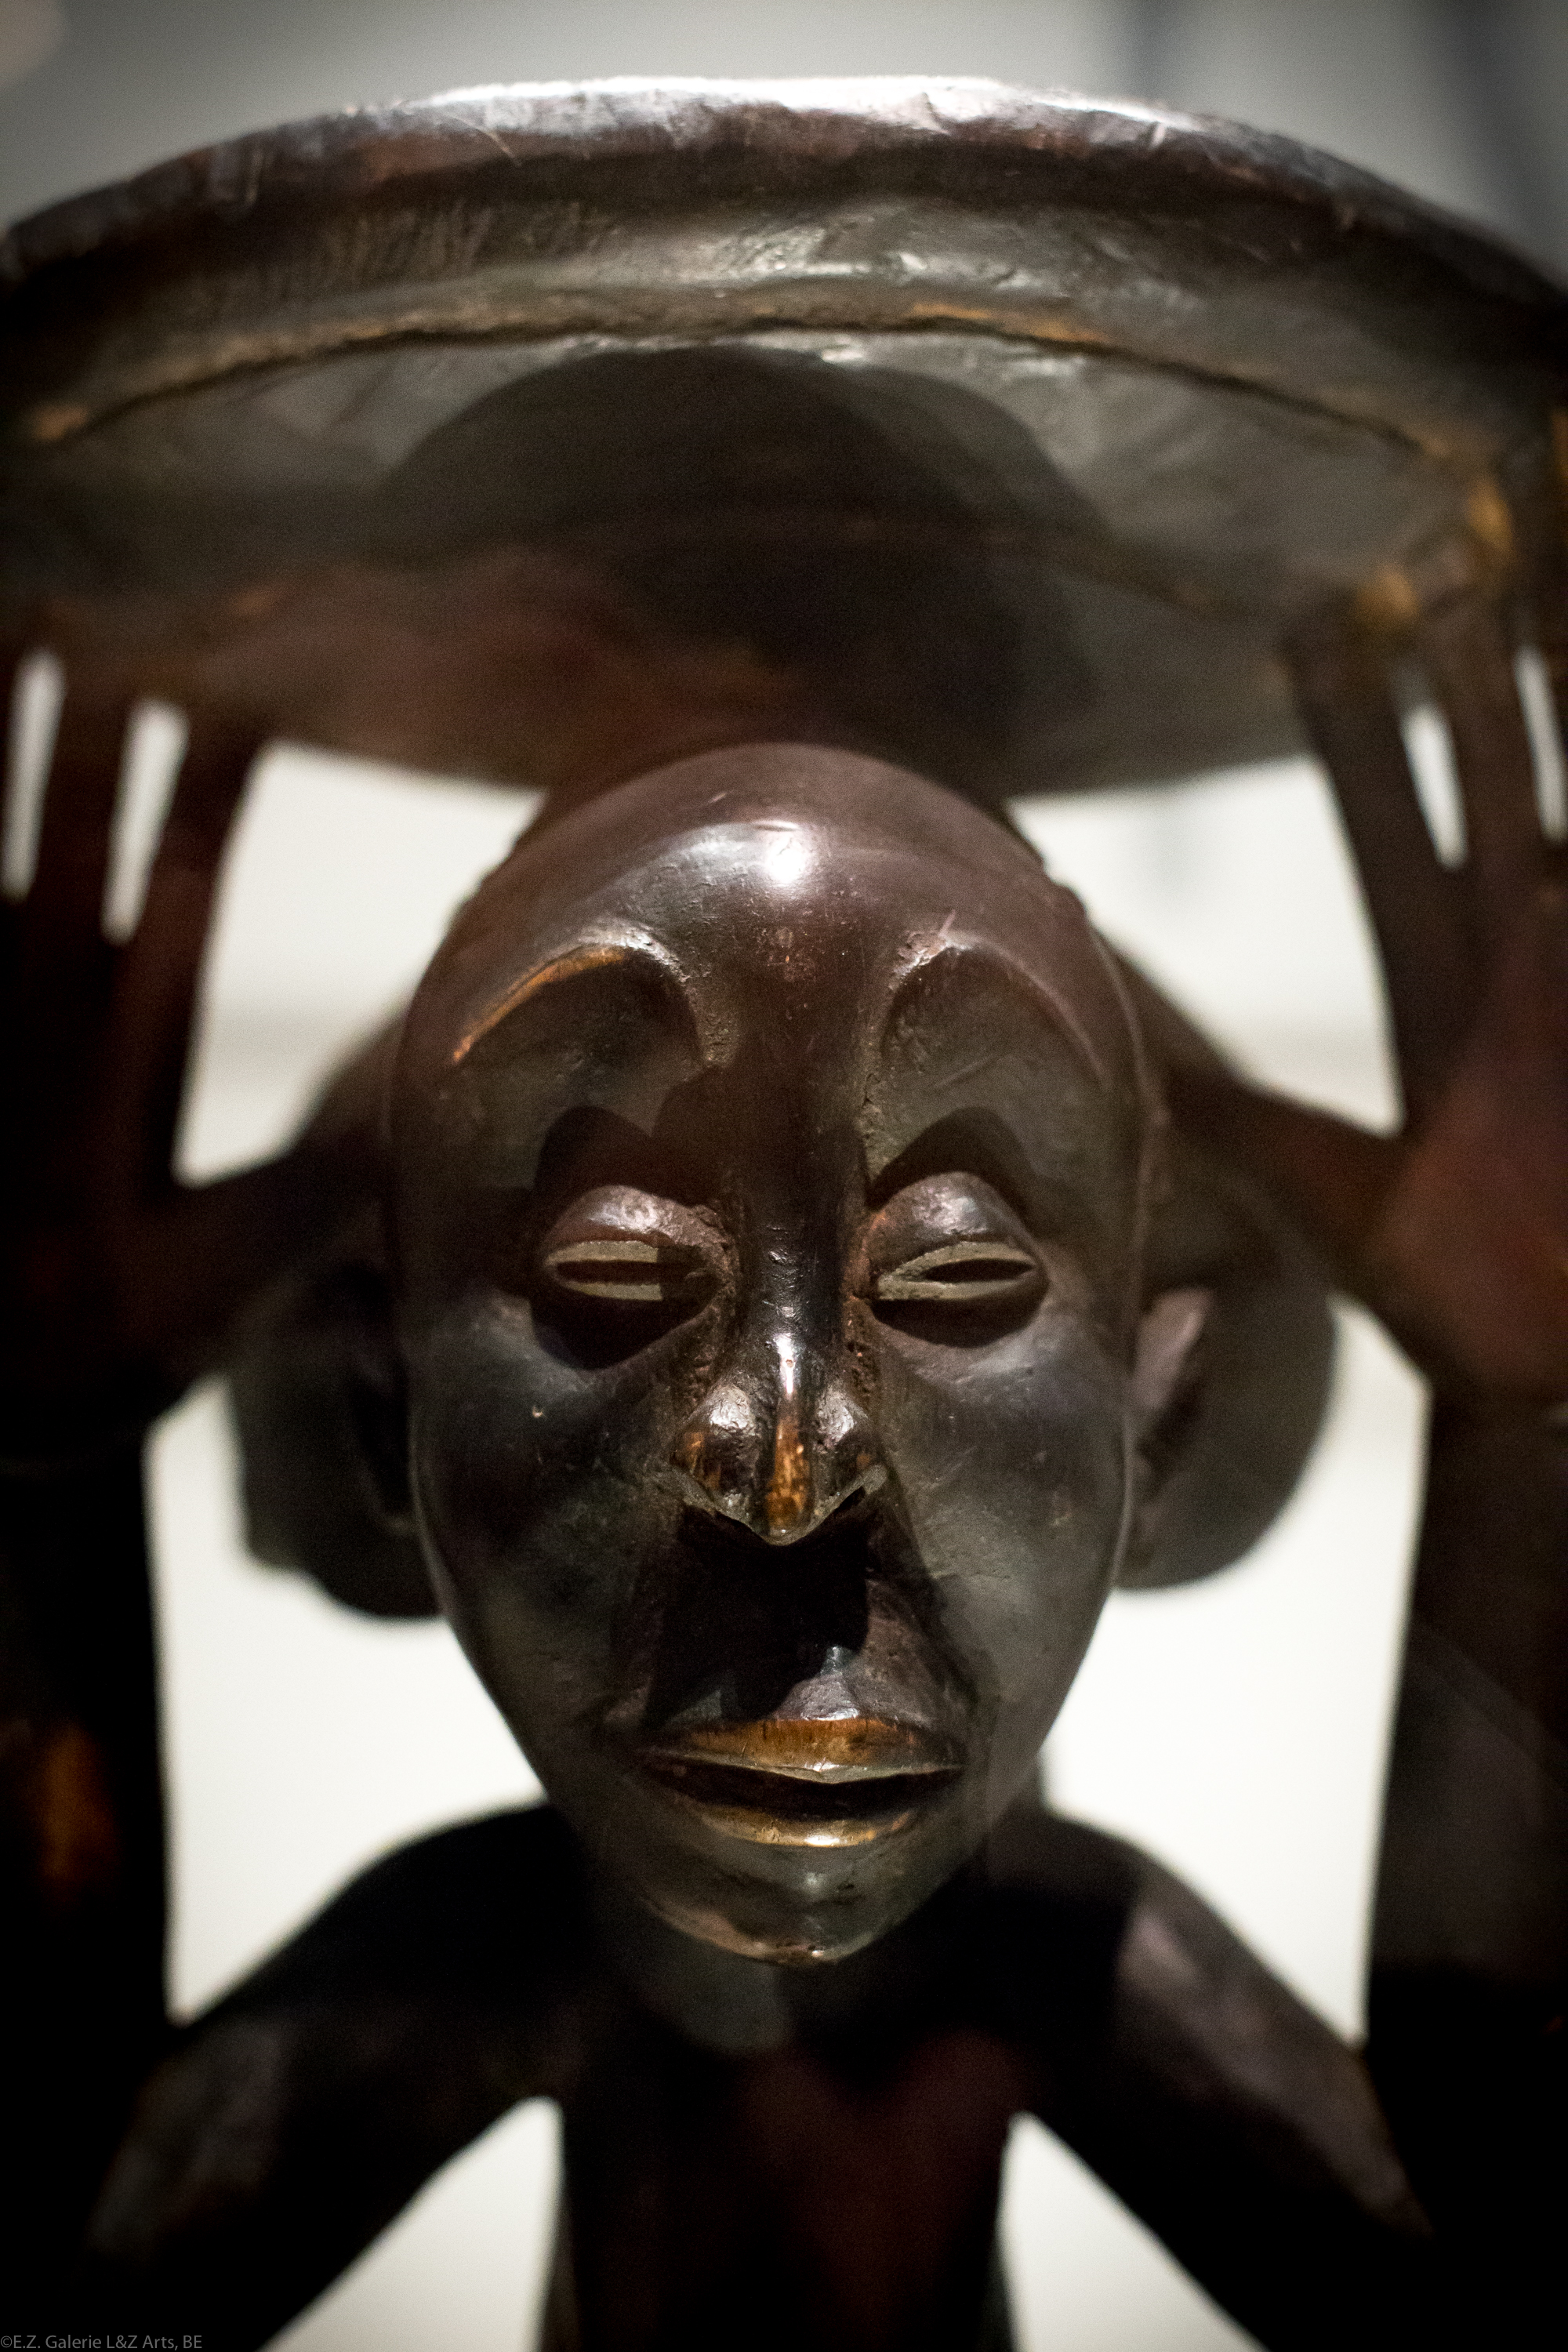 art-tribal-africain-londres-british-museum-sainsbury-galleries-bronze-benin-statue-masque-ivoire-africa-london-bini-edo-galerie-lz-arts-belgique-france-25.jpg